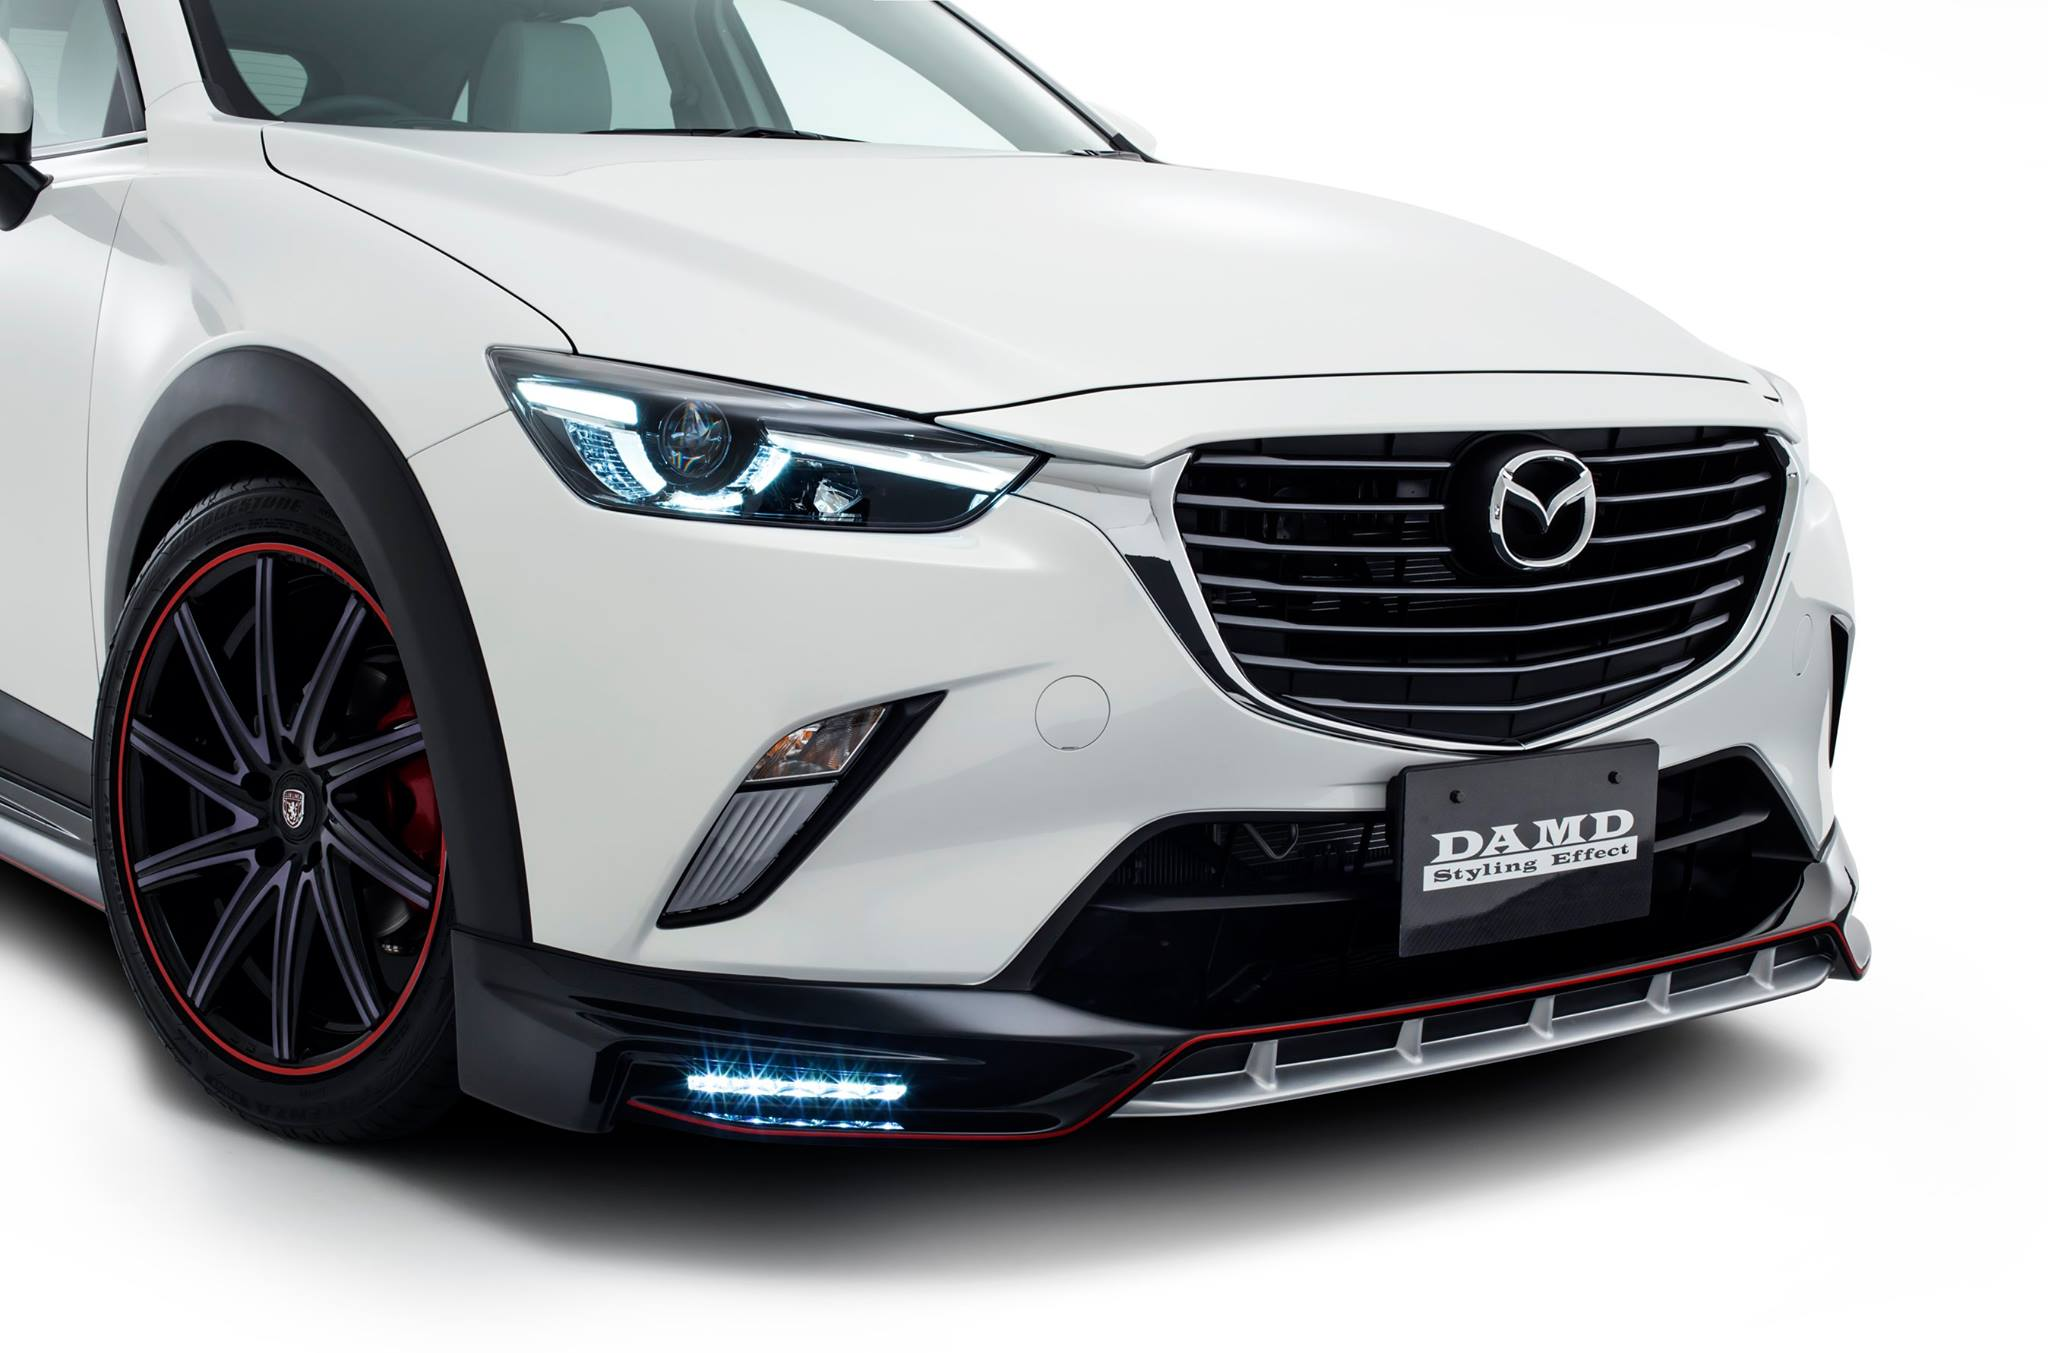 Mazda 3 Japan >> Mazda 2 and CX-3 fitted with DAMD body kits in Japan Paul Tan - Image 468244